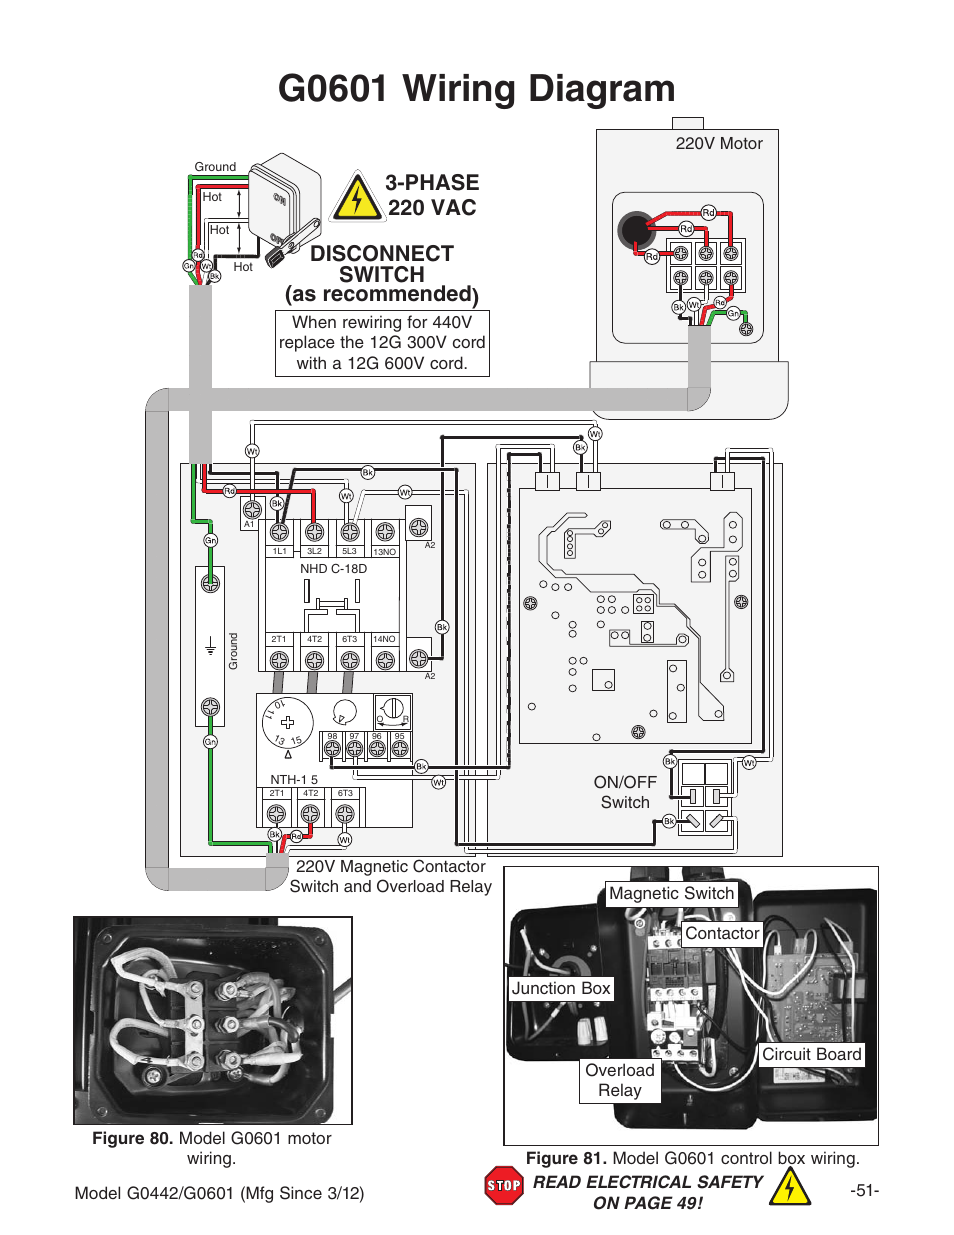 G0601 Wiring Diagram Disconnect Switch As Recommended 3 Phase 220 220v Motor Vac Grizzly G0442 User Manual Page 53 60